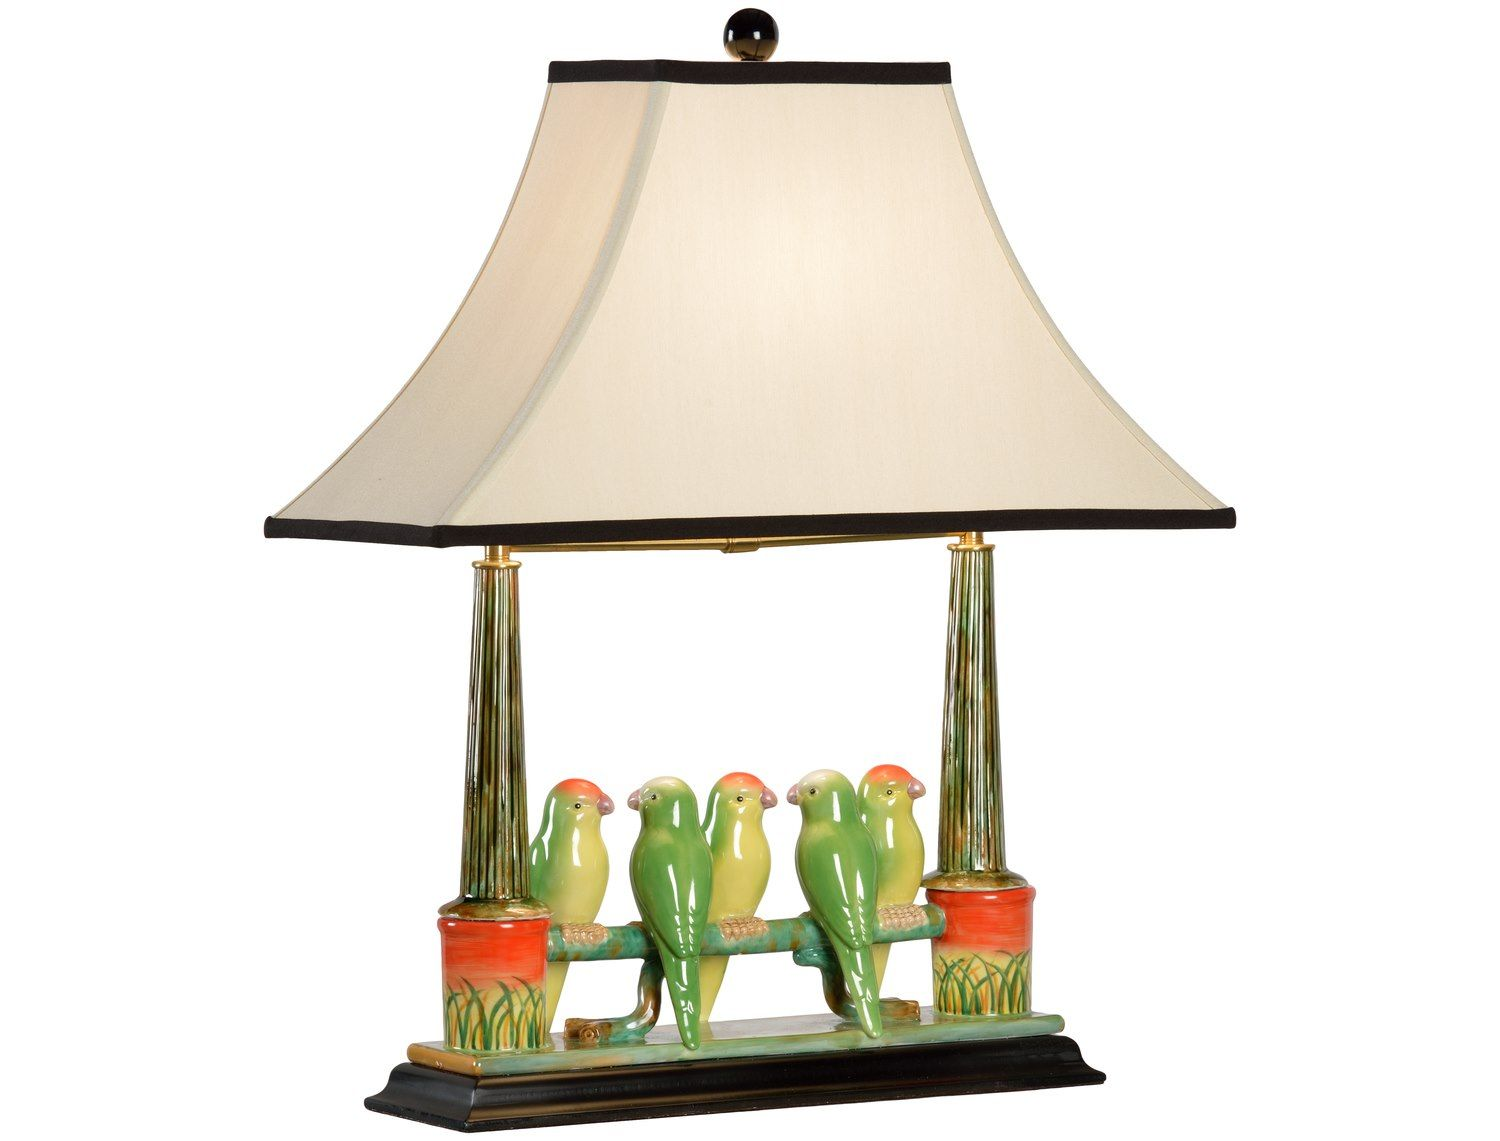 Wildwood lamps newport mansion collection budgies fired ceramic table lamp wl60353